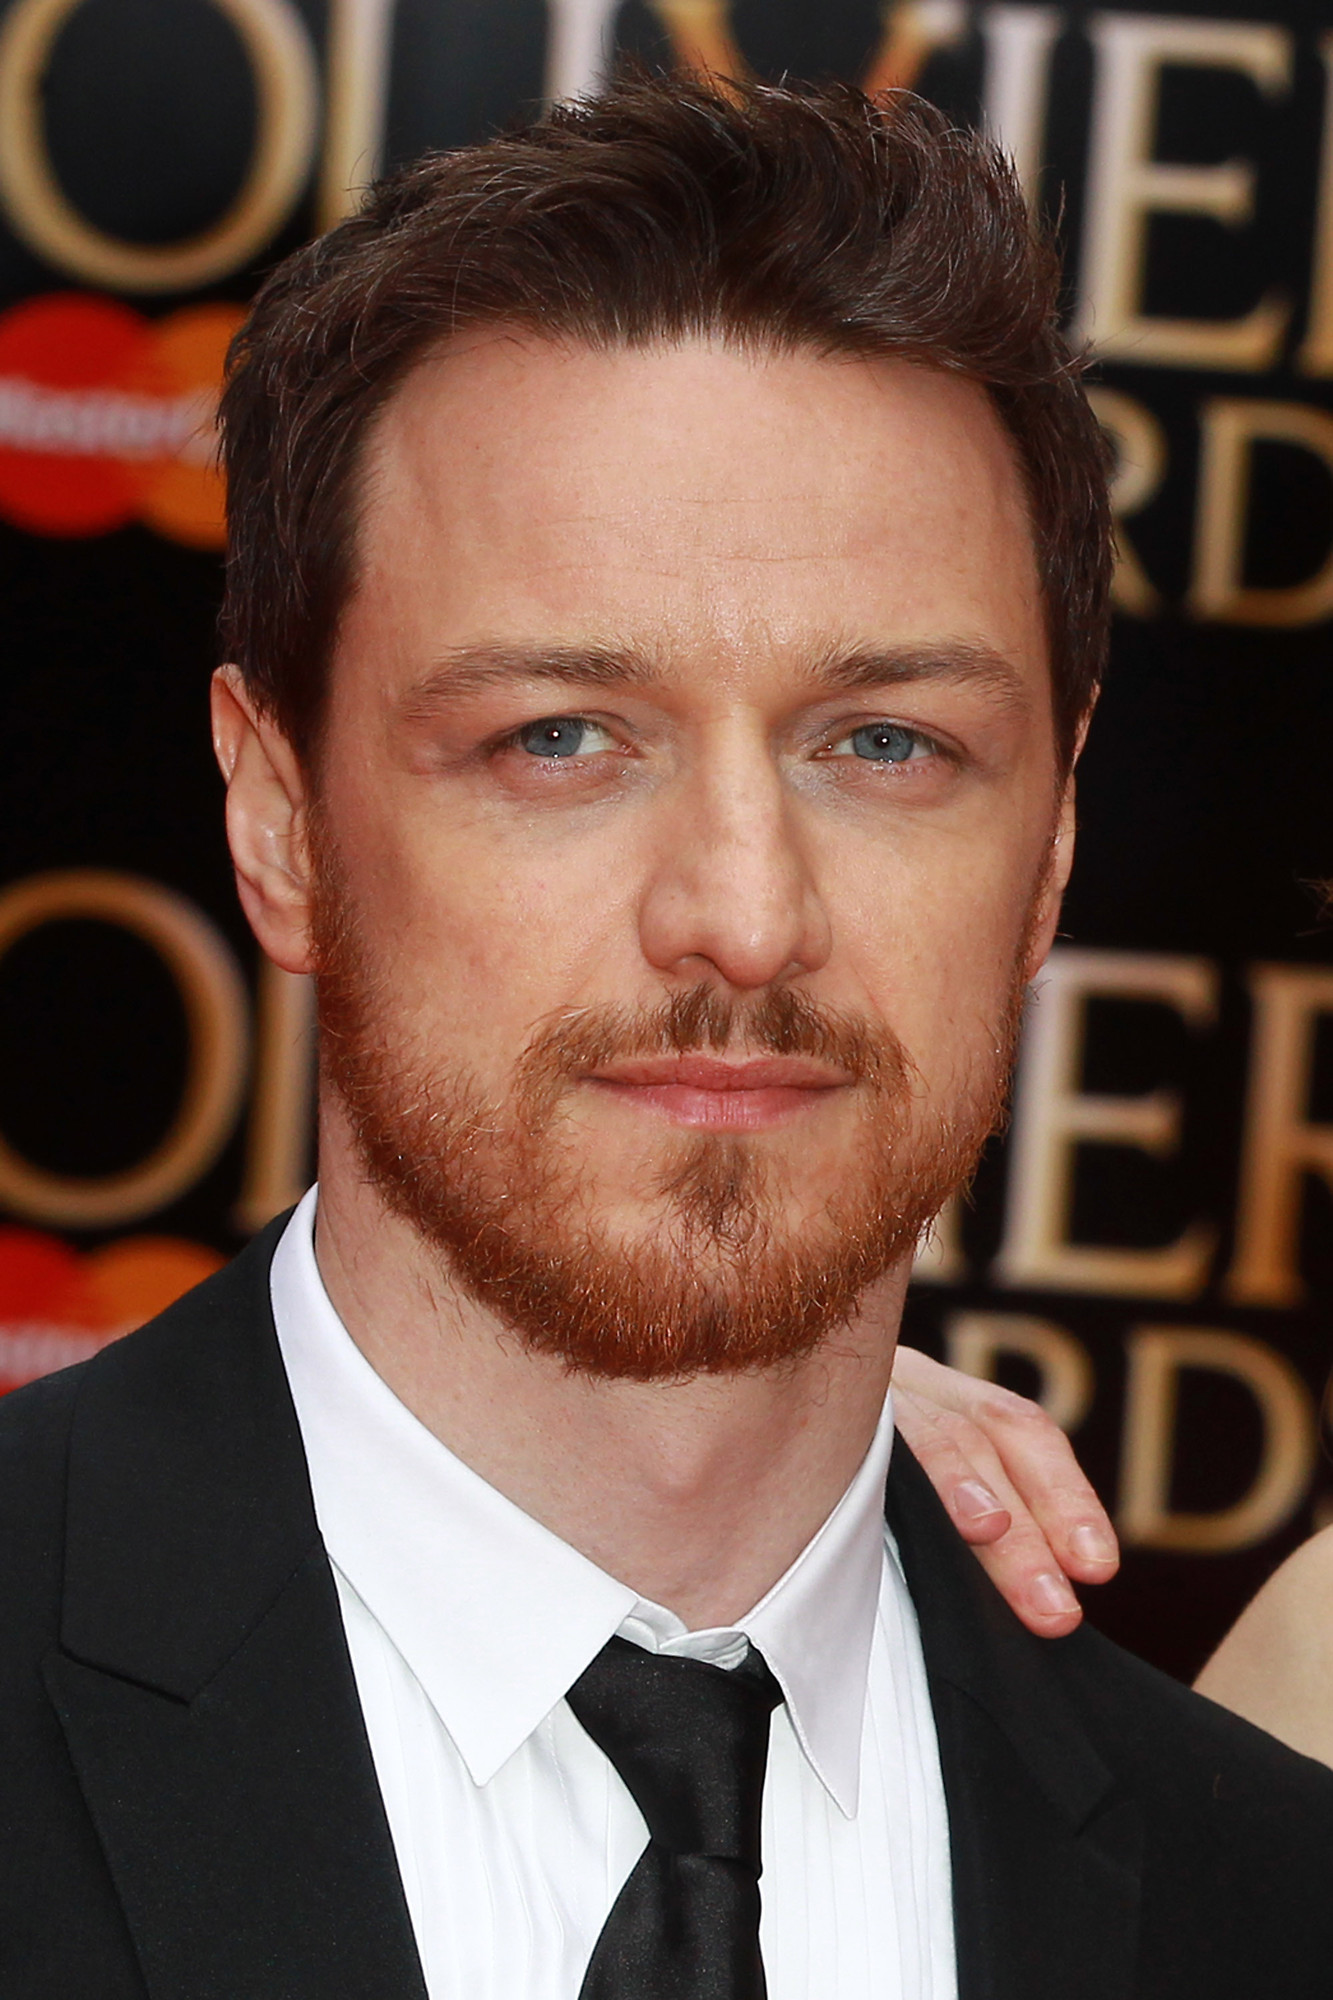 James McAvoy (born 1979) nude (82 photos), Topless, Hot, Boobs, panties 2006